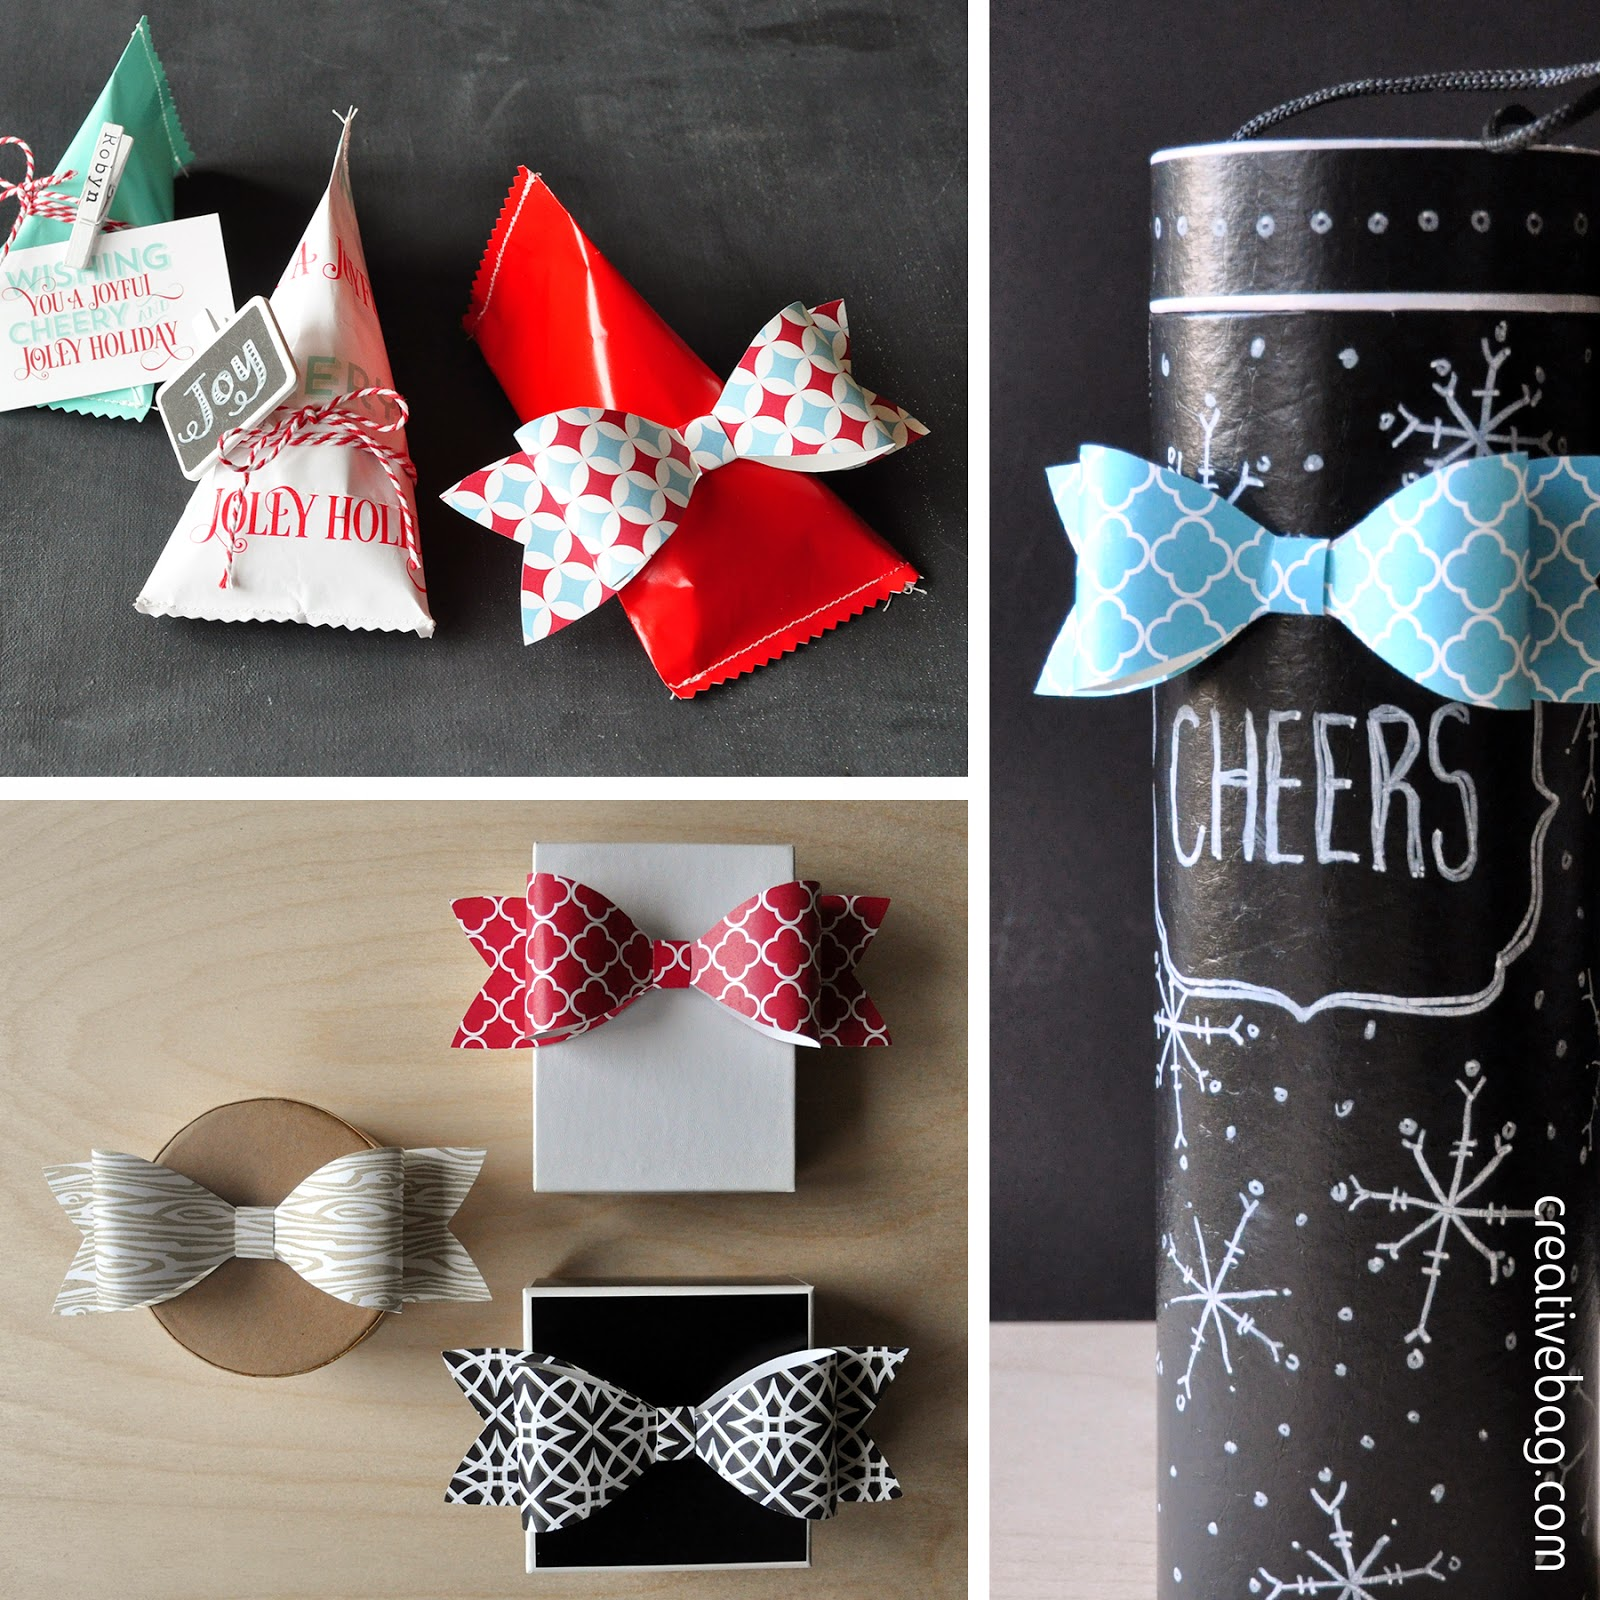 paper bow printables to download for free - for holiday packaging | creativebag.com